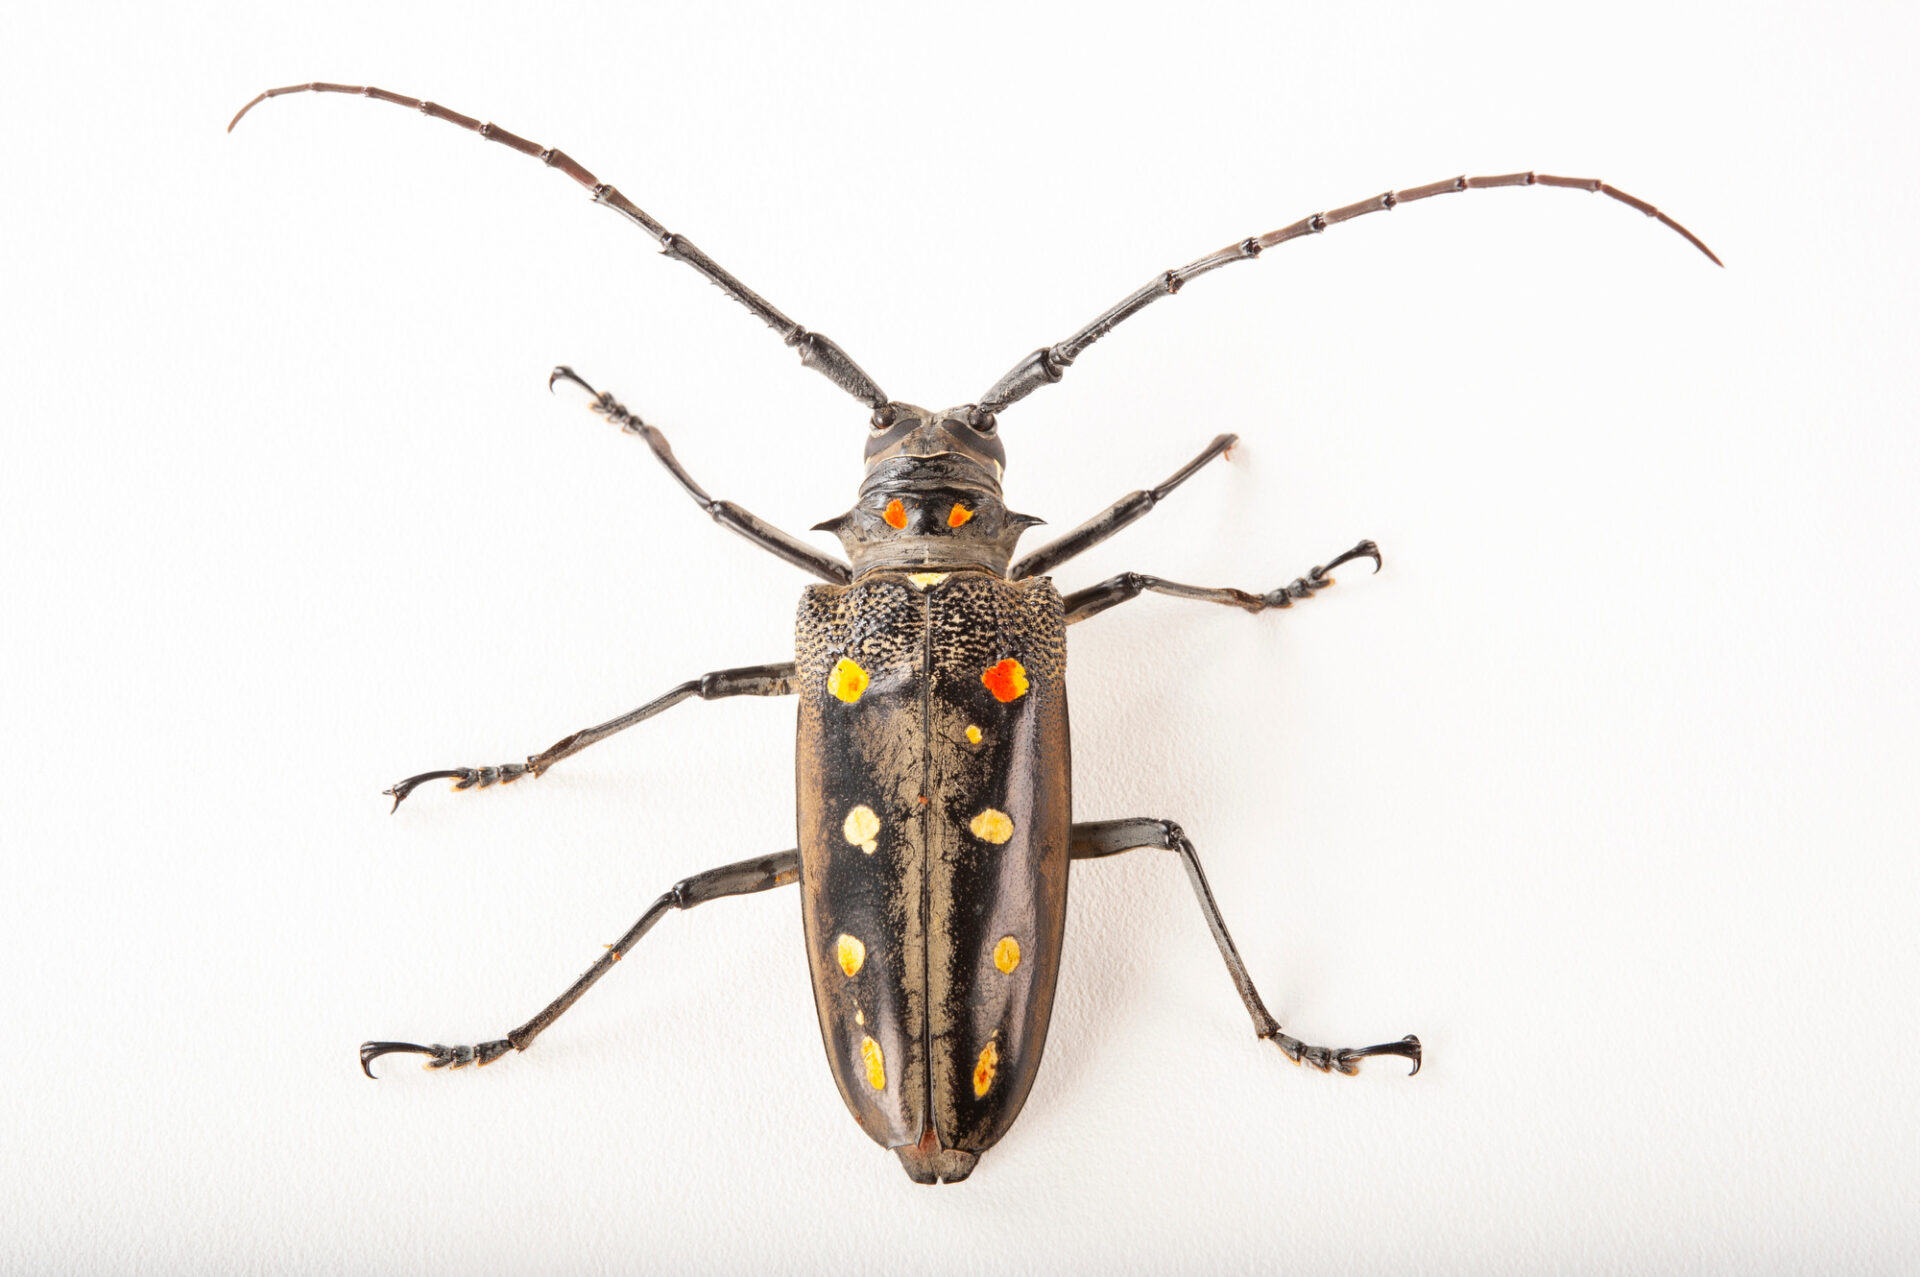 Photo: White-spotted longhorn beetle (Batocera hector) at the Insectarium in New Orleans.